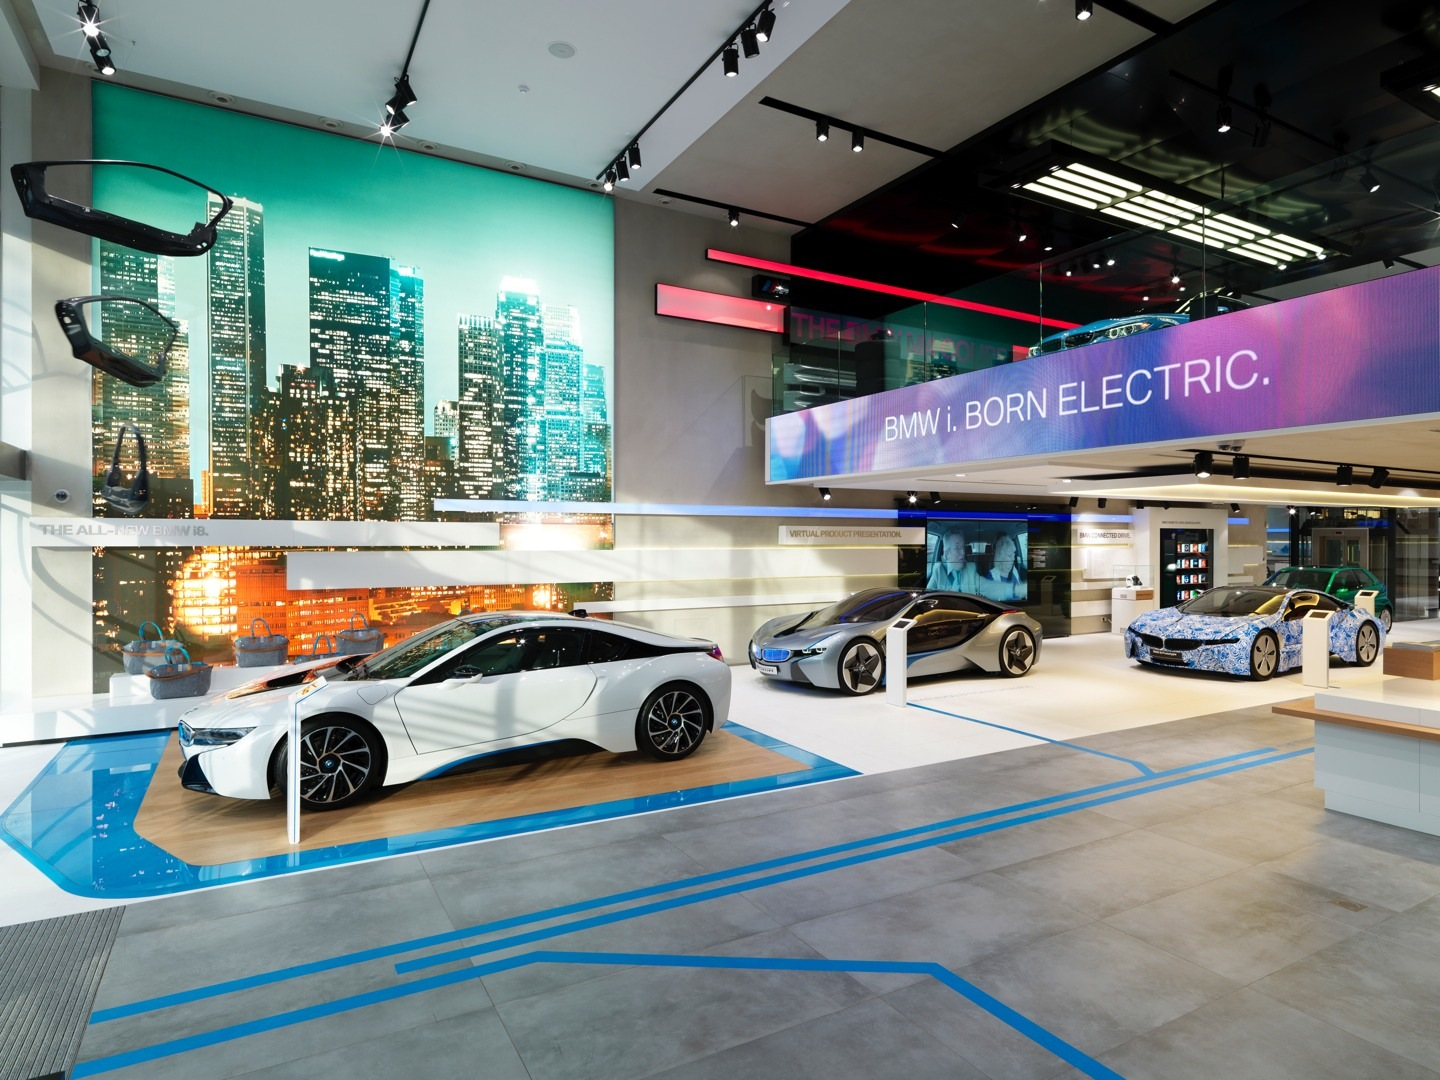 Brussels Bmw Brand Store Earns 2014 Iconic Award For Interior Design